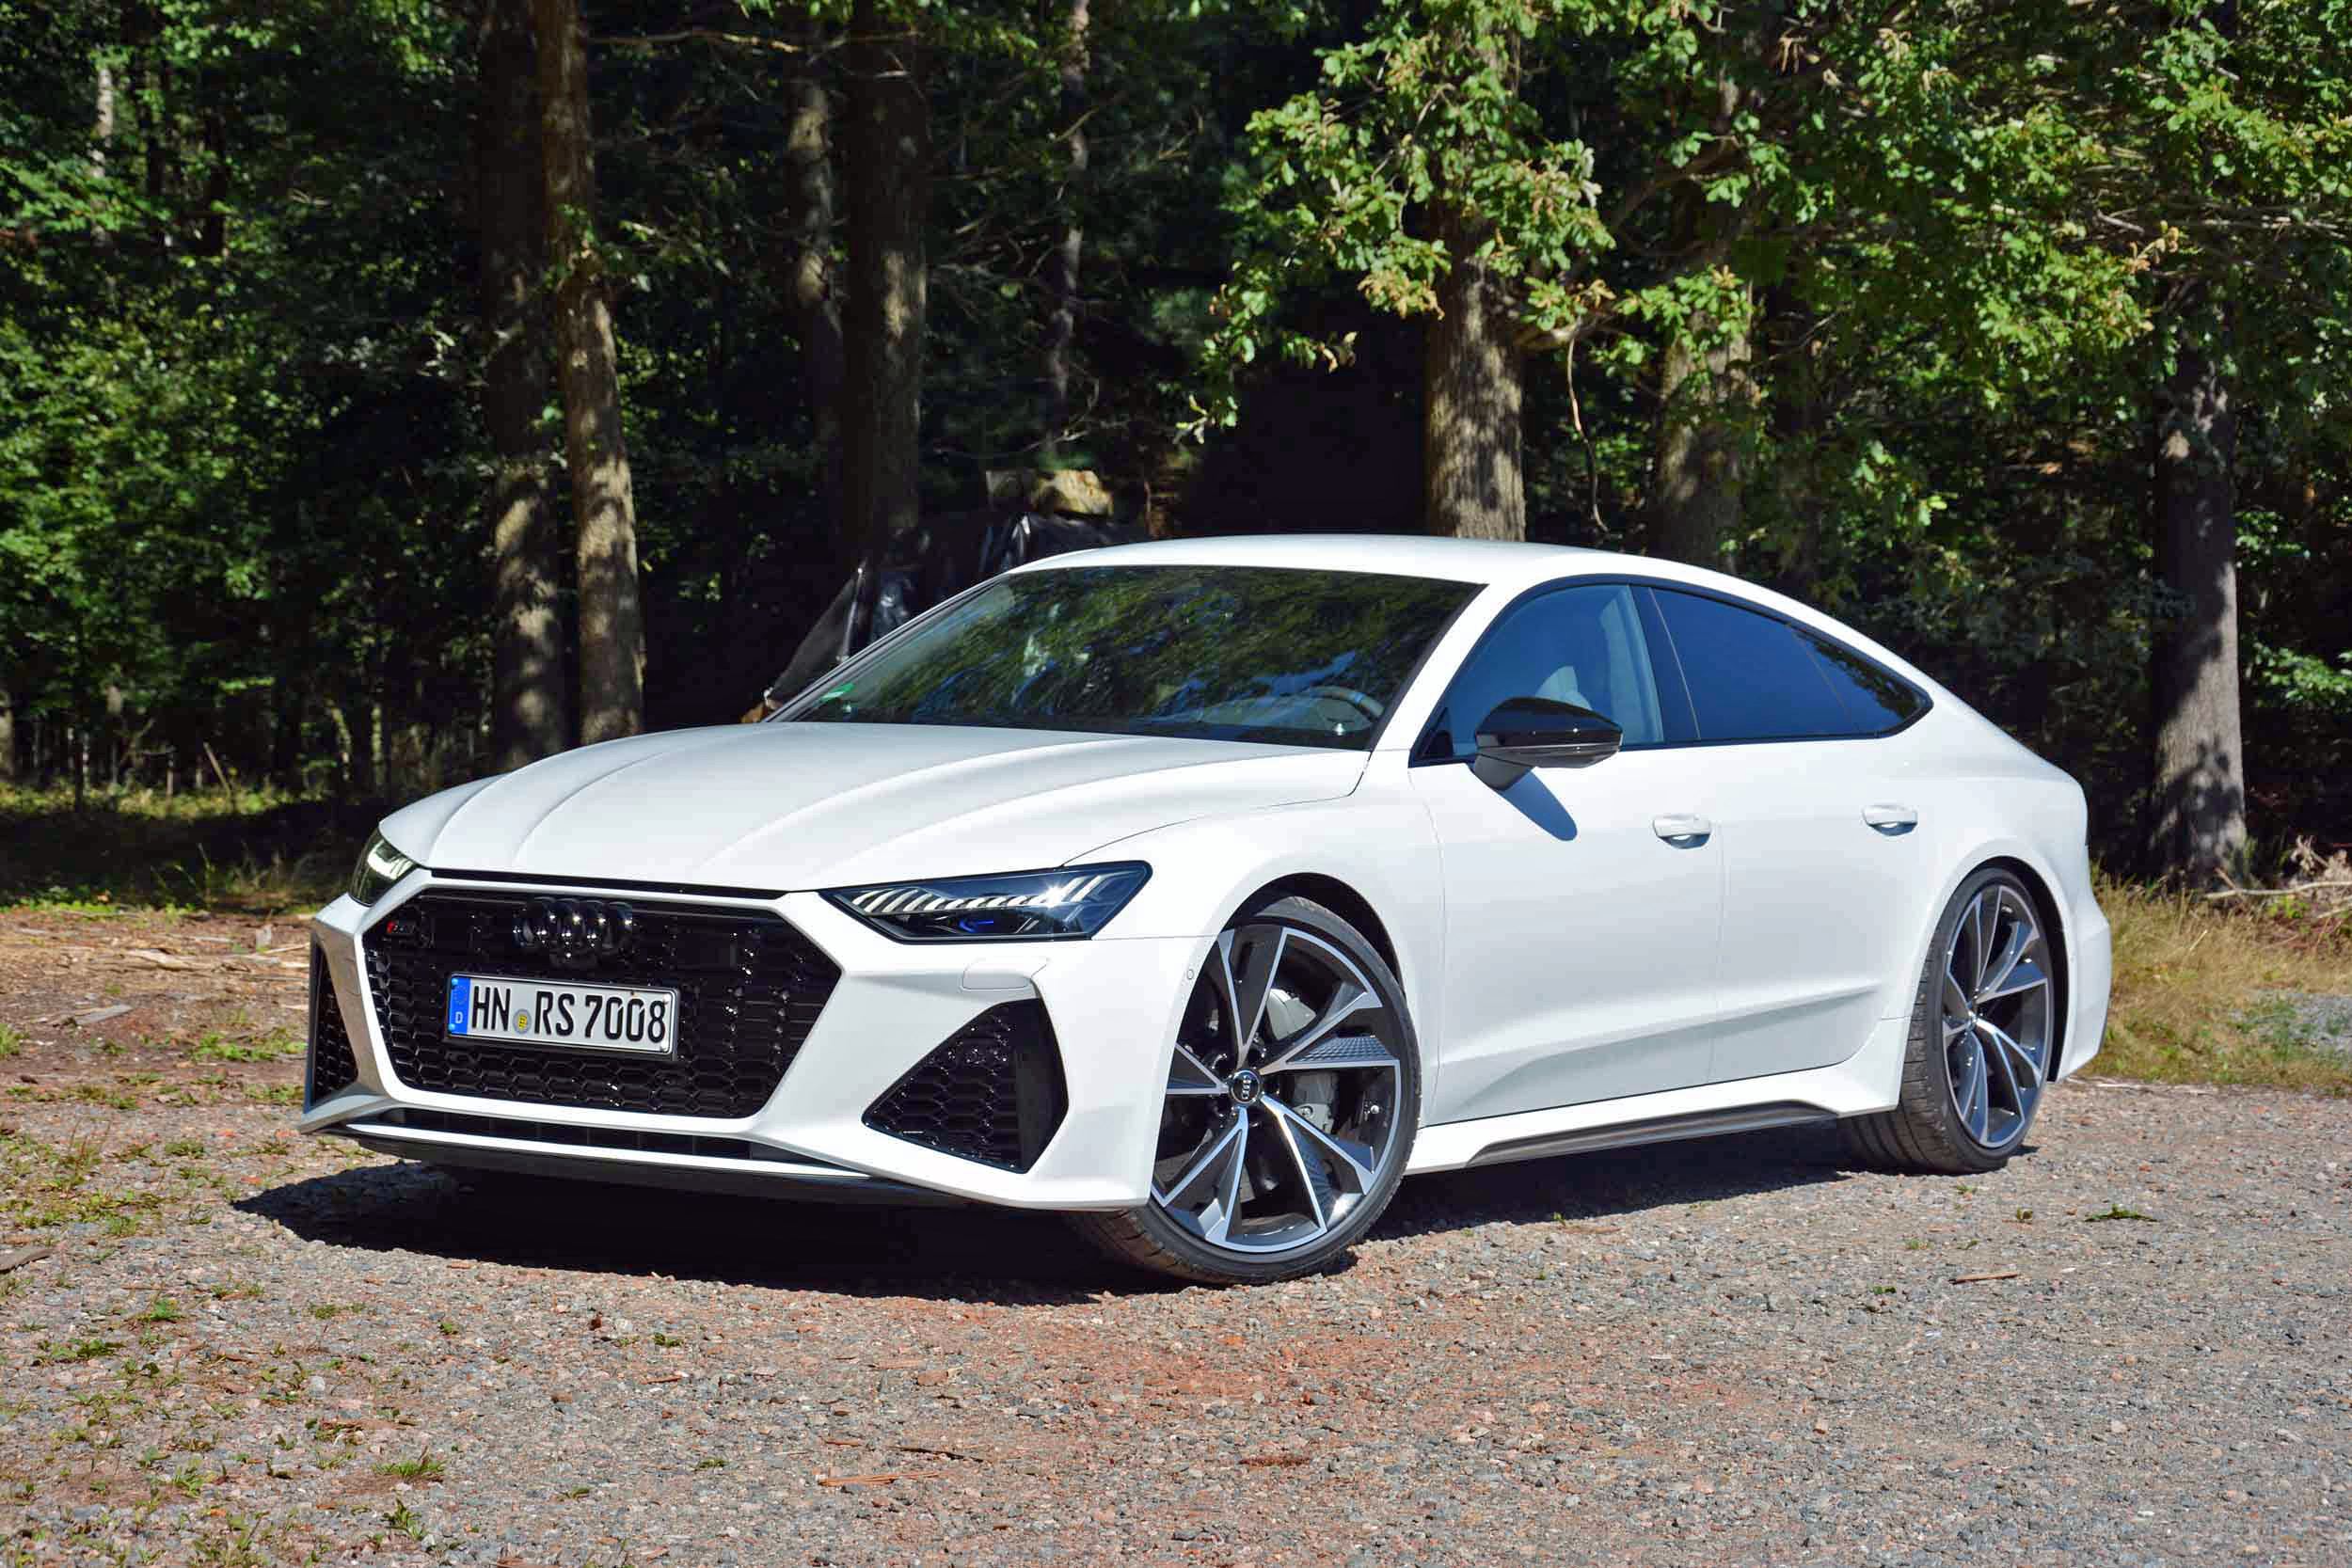 2020 Audi Rs 7 First Drive Review What S New Performance Handling Autoblog